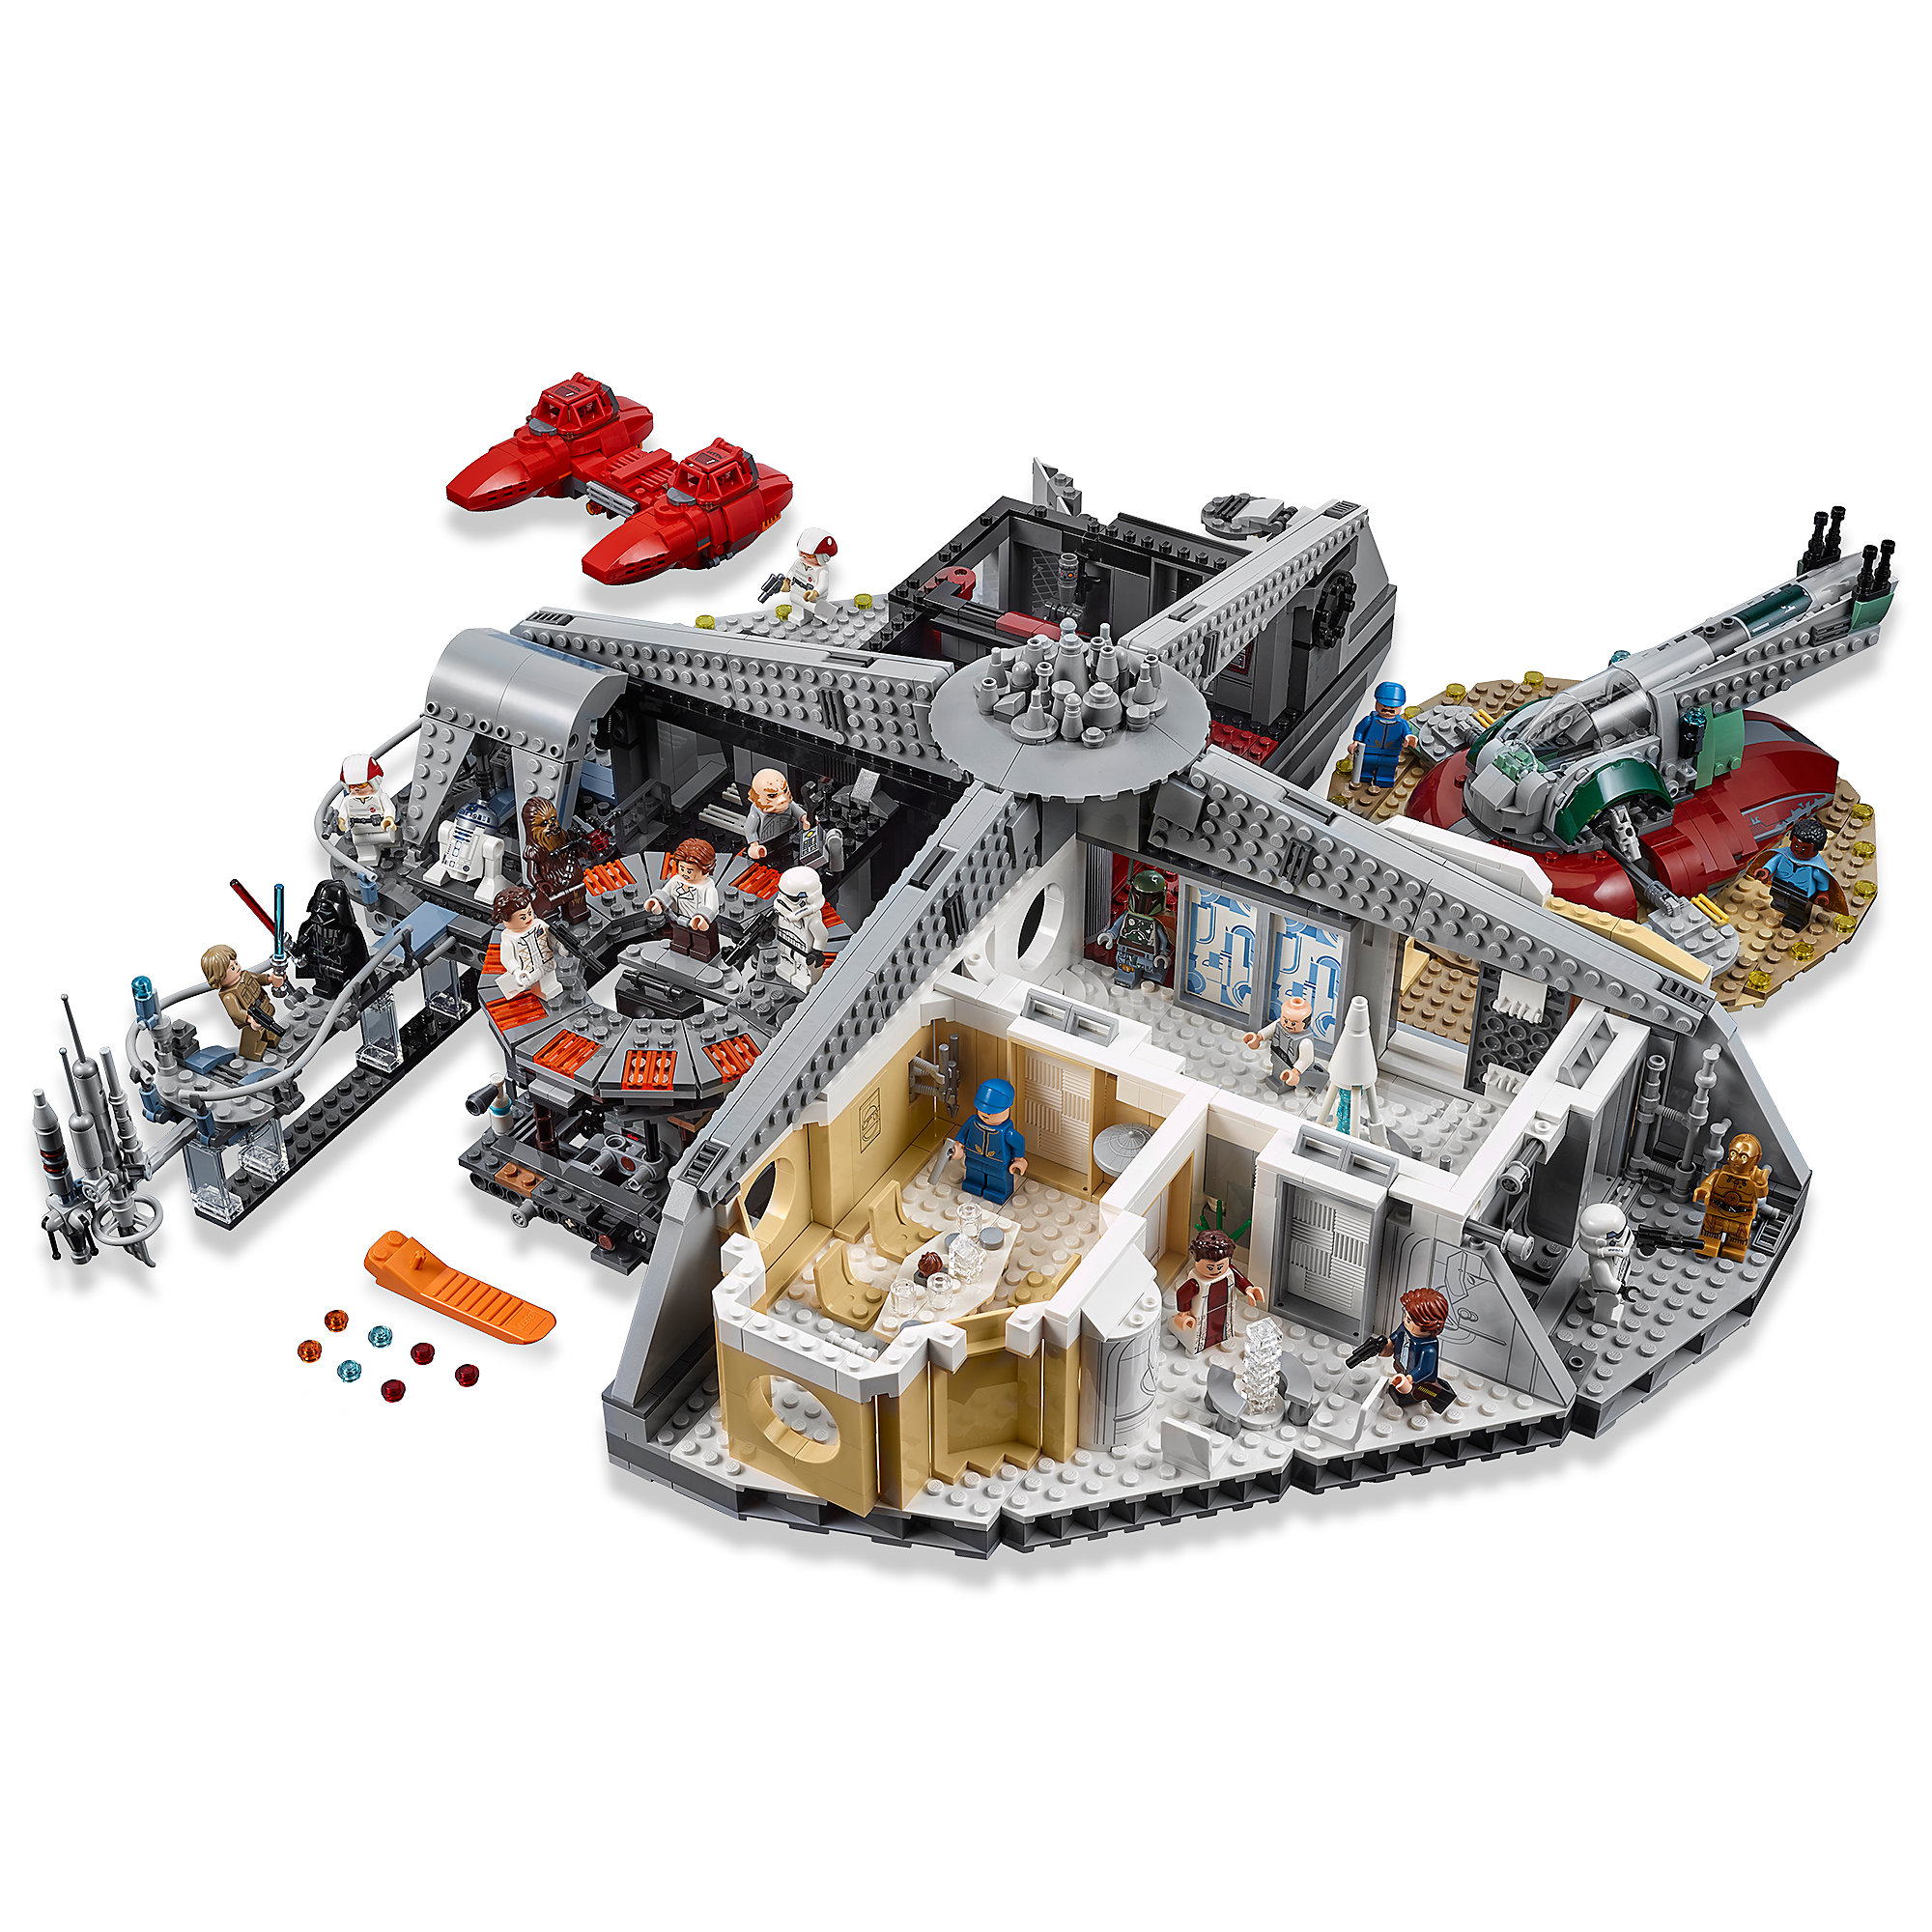 Betrayal at Cloud City Playset by LEGO - Star Wars: The Empire Strikes Back